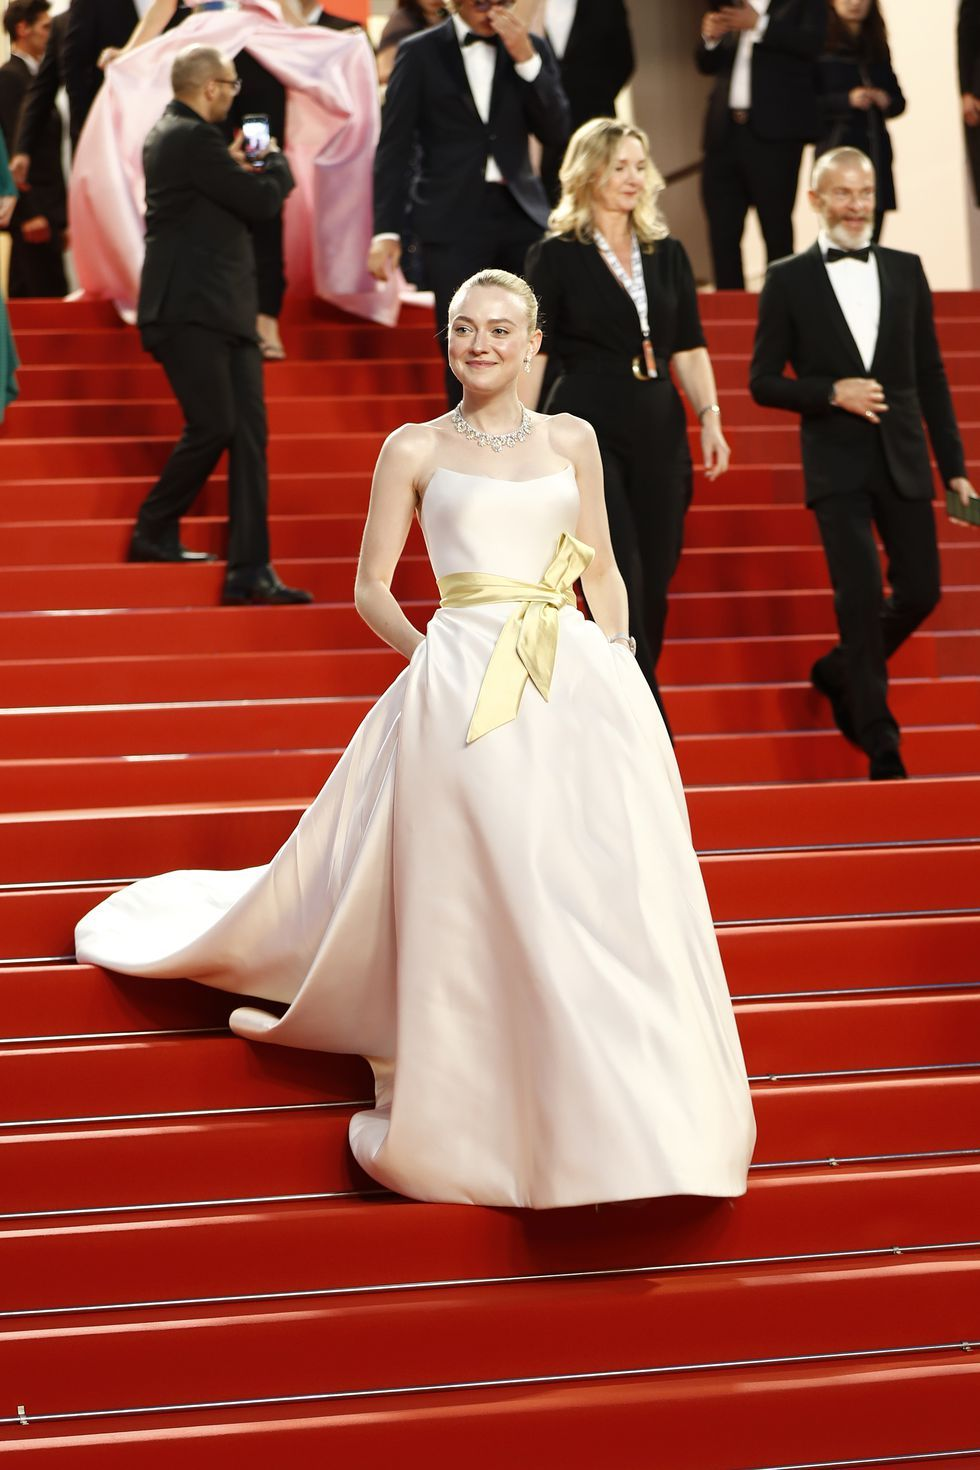 Dakota Fanning In Chopard jewelry at the Once Upon a Time in Hollywood premiere on May 21, 2019.